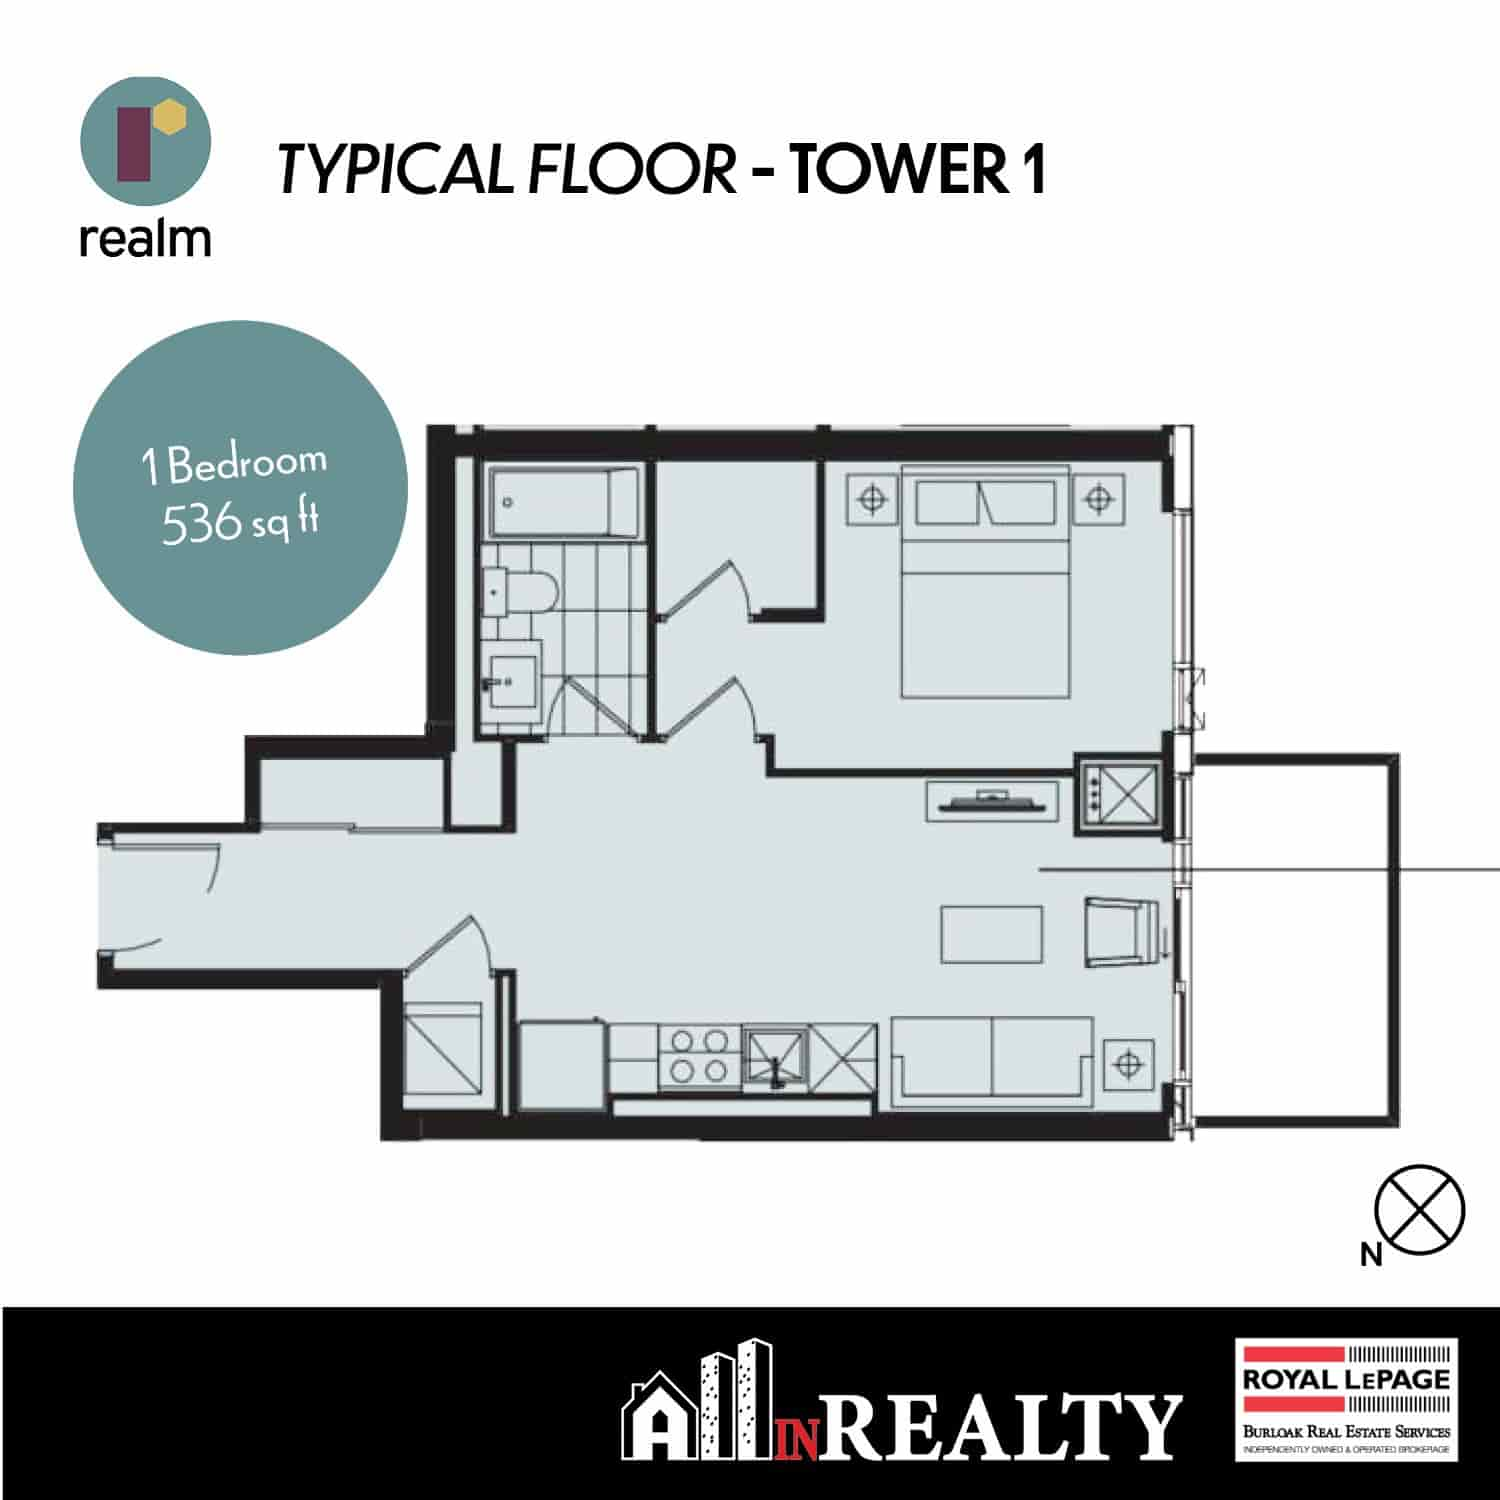 Realm 1 Bedroom